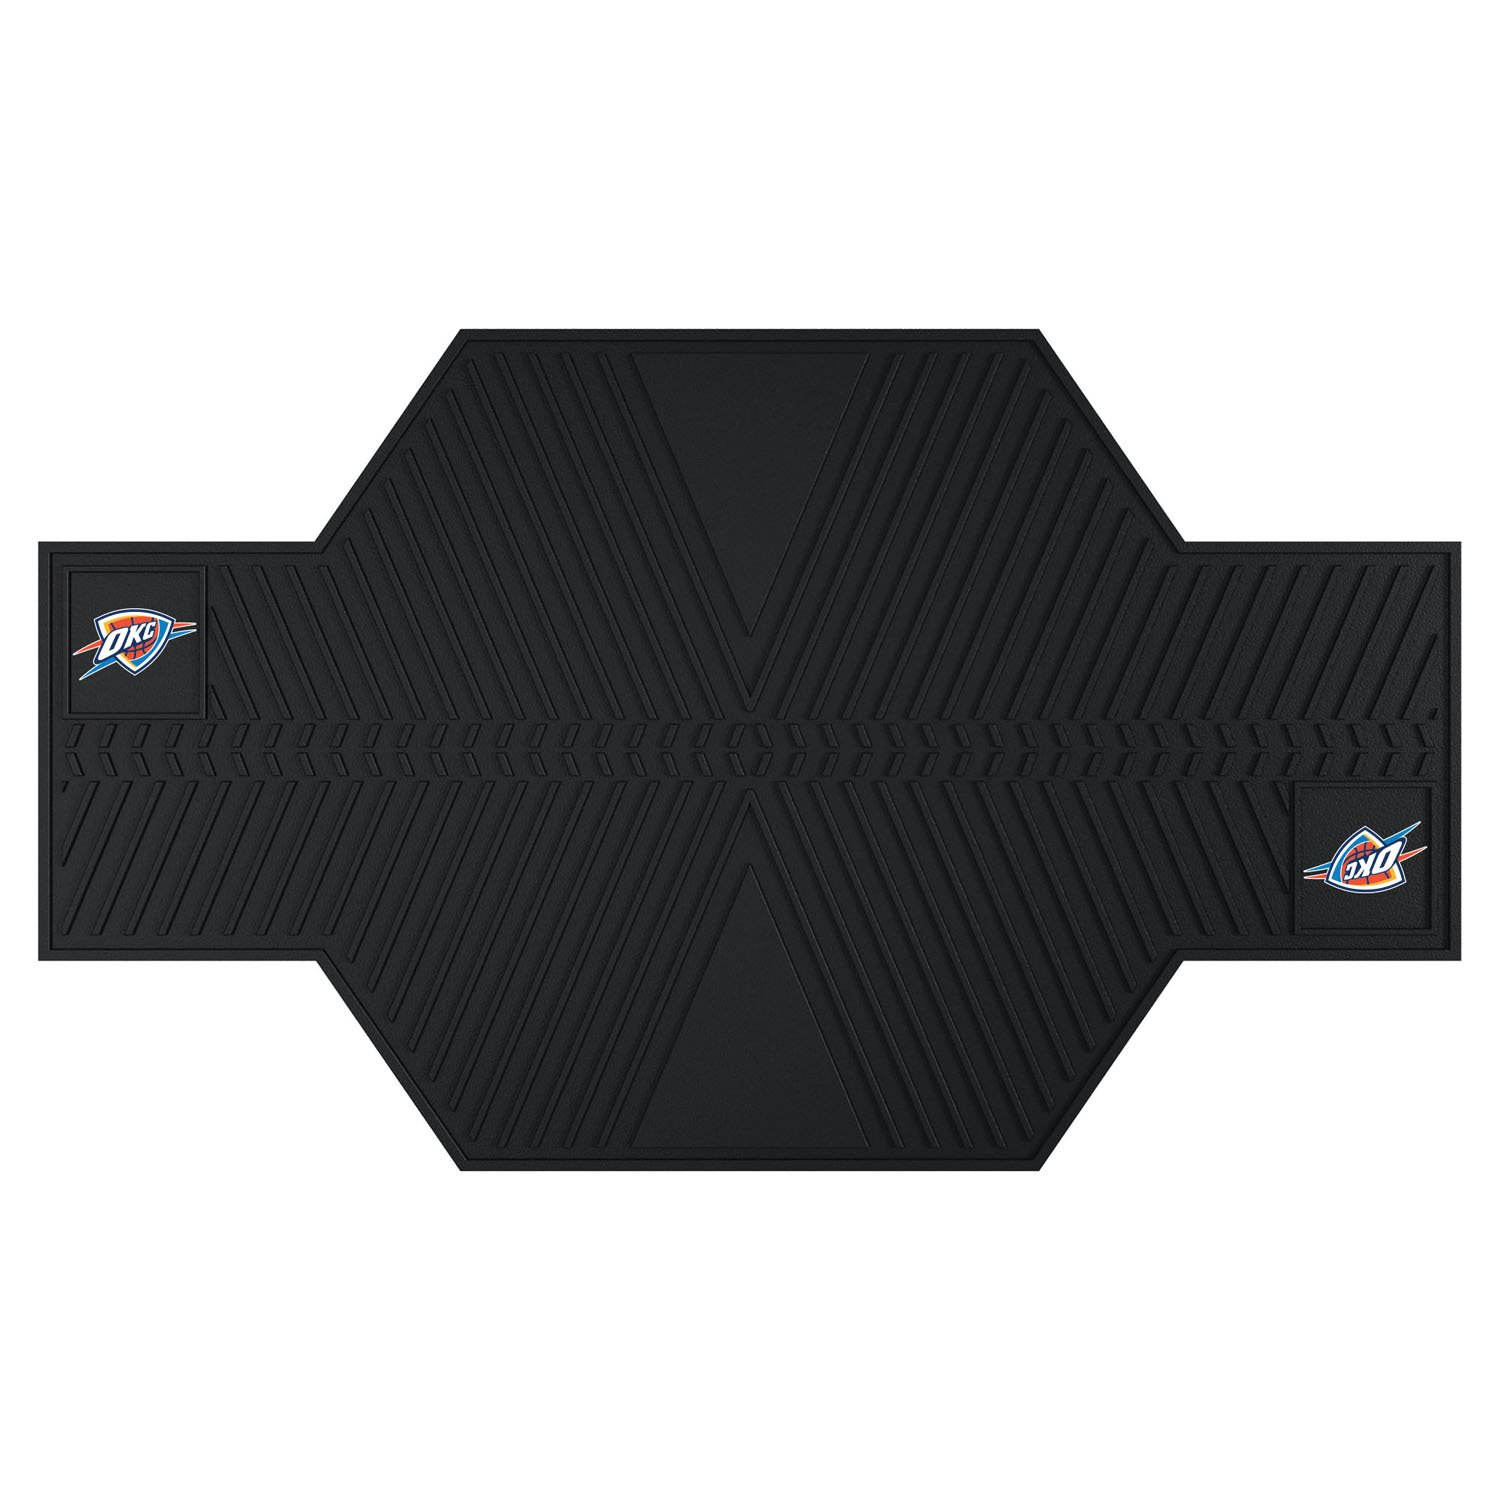 NBA Motorcycle Mat (Oklahoma City Thunder) (5/16''H x 42''W x 82 1/2''D)